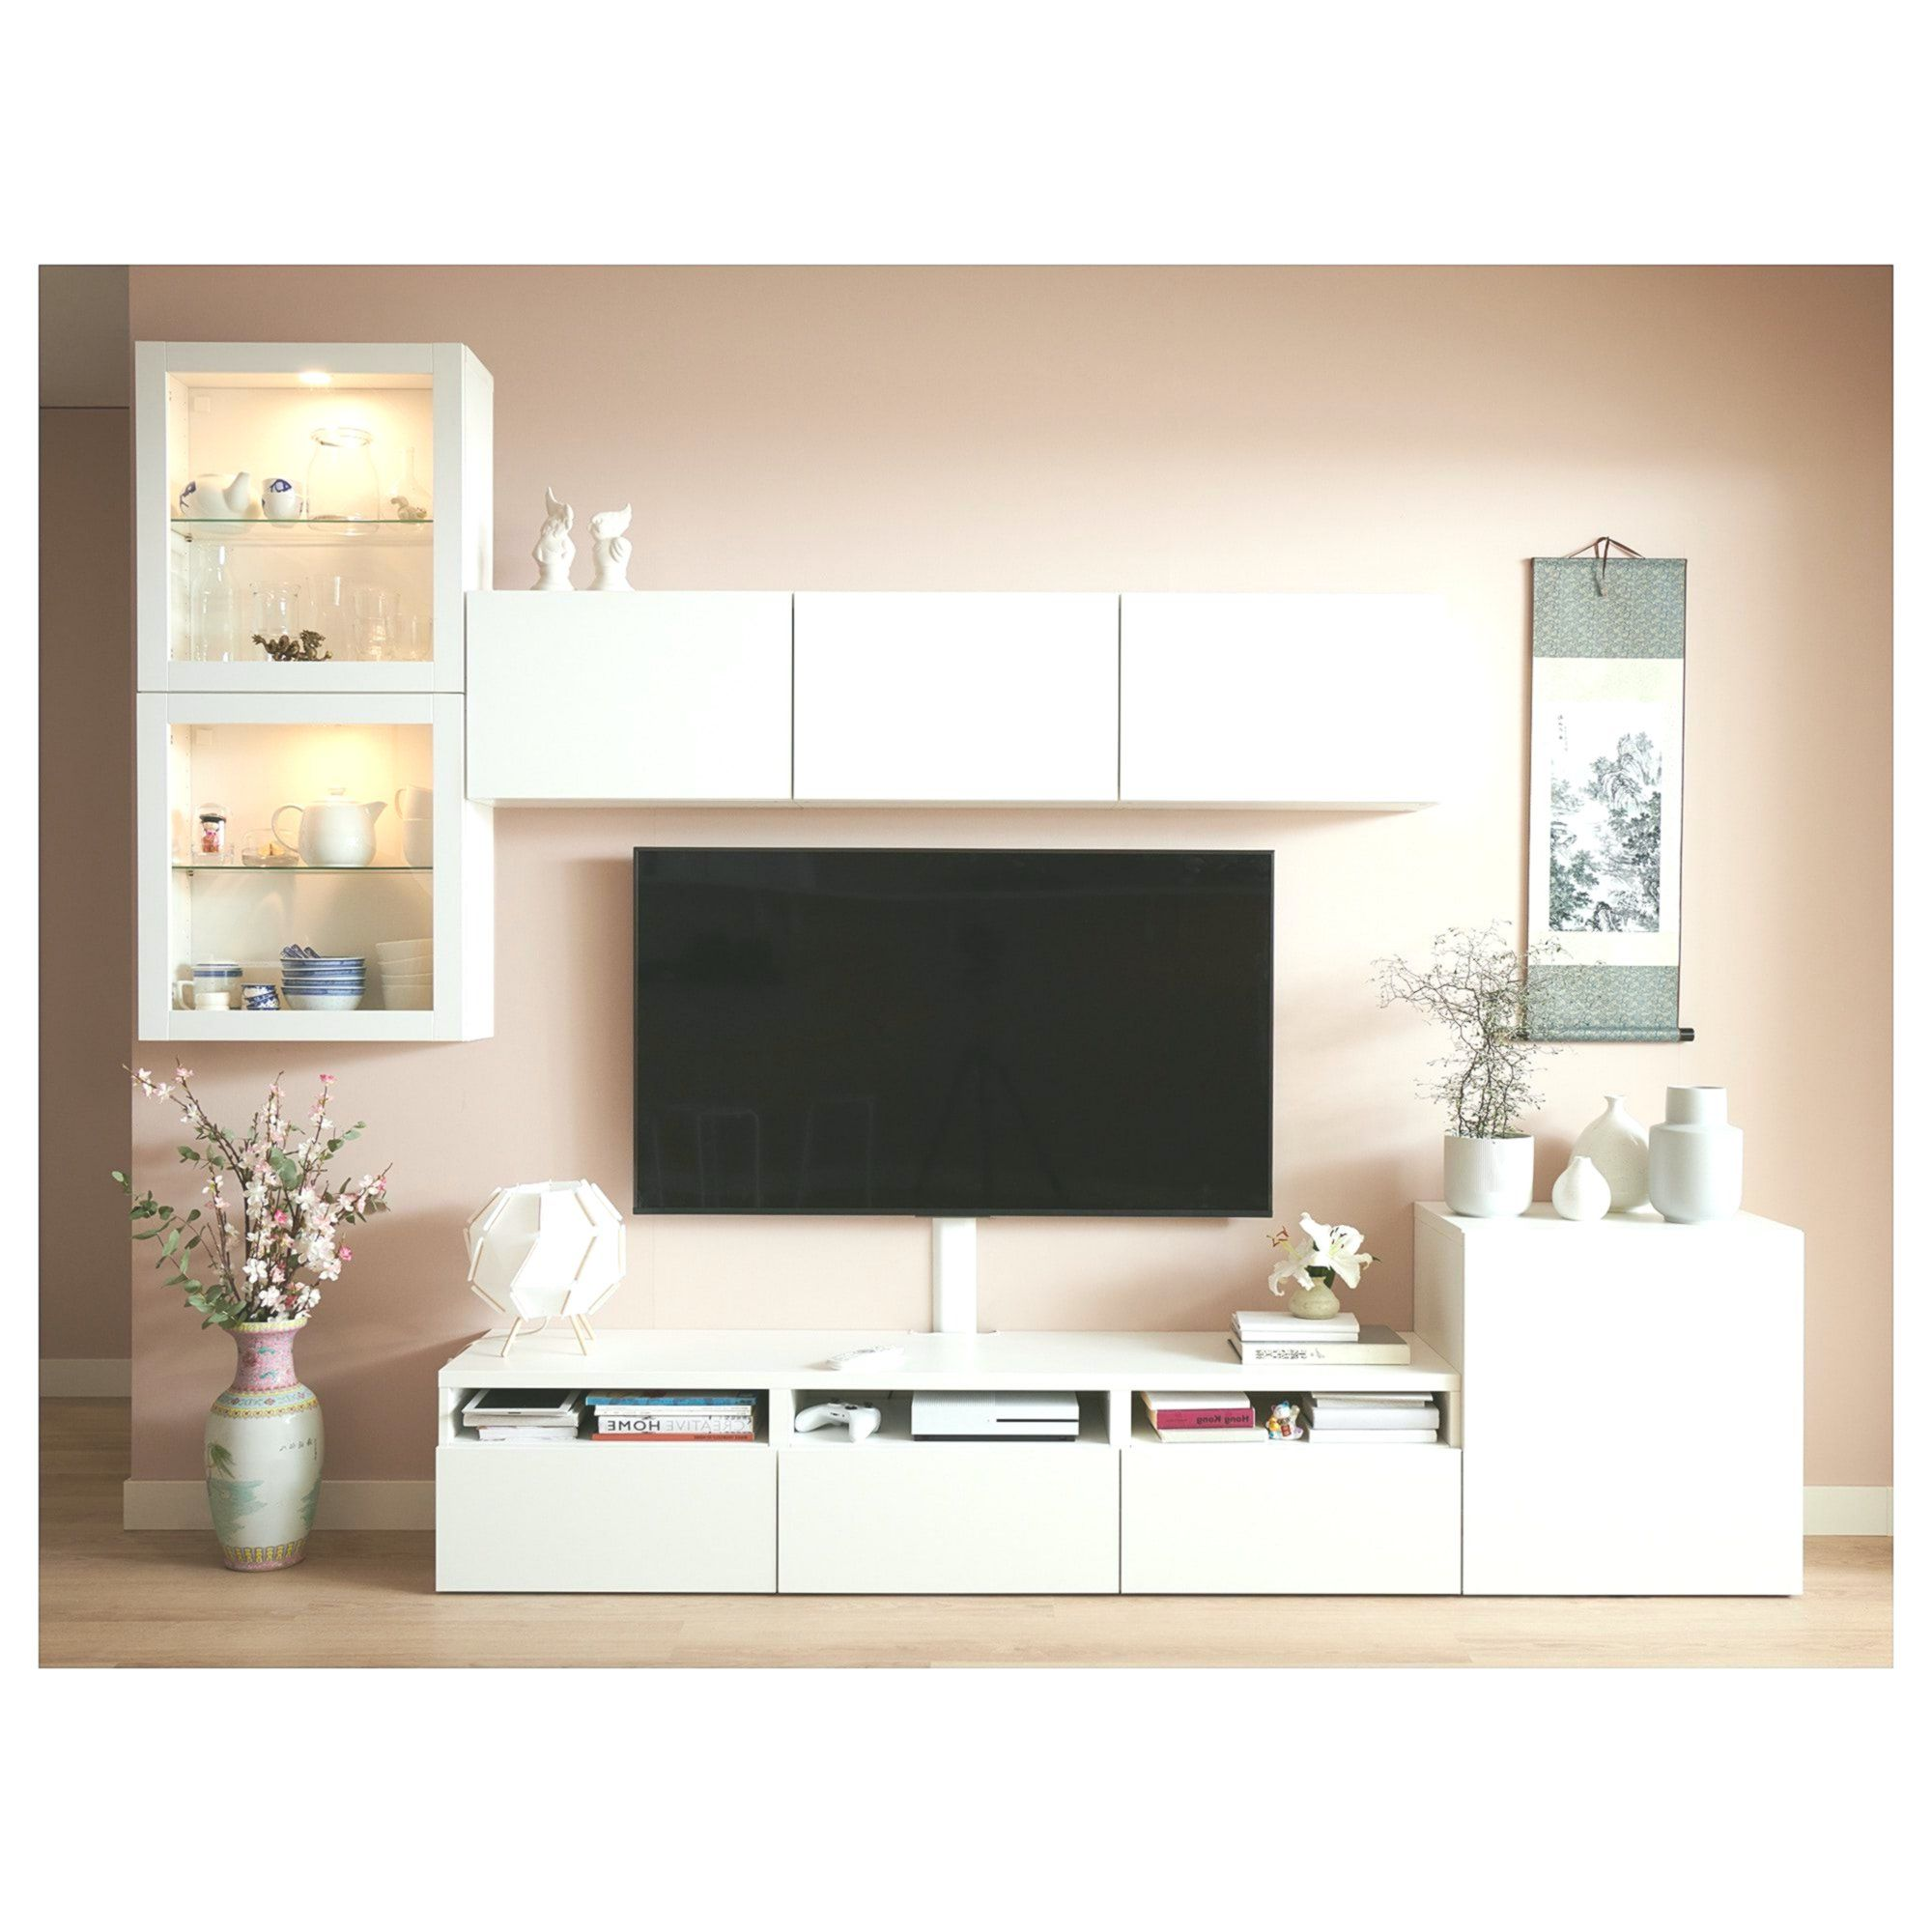 Best Combination Of Tv Storage Glass Doors Lappviken Sindvik White Transparent Glass Ikea Wohnzimmer Tv Kleines Schlafzimmer Und Tv Wandgestaltung